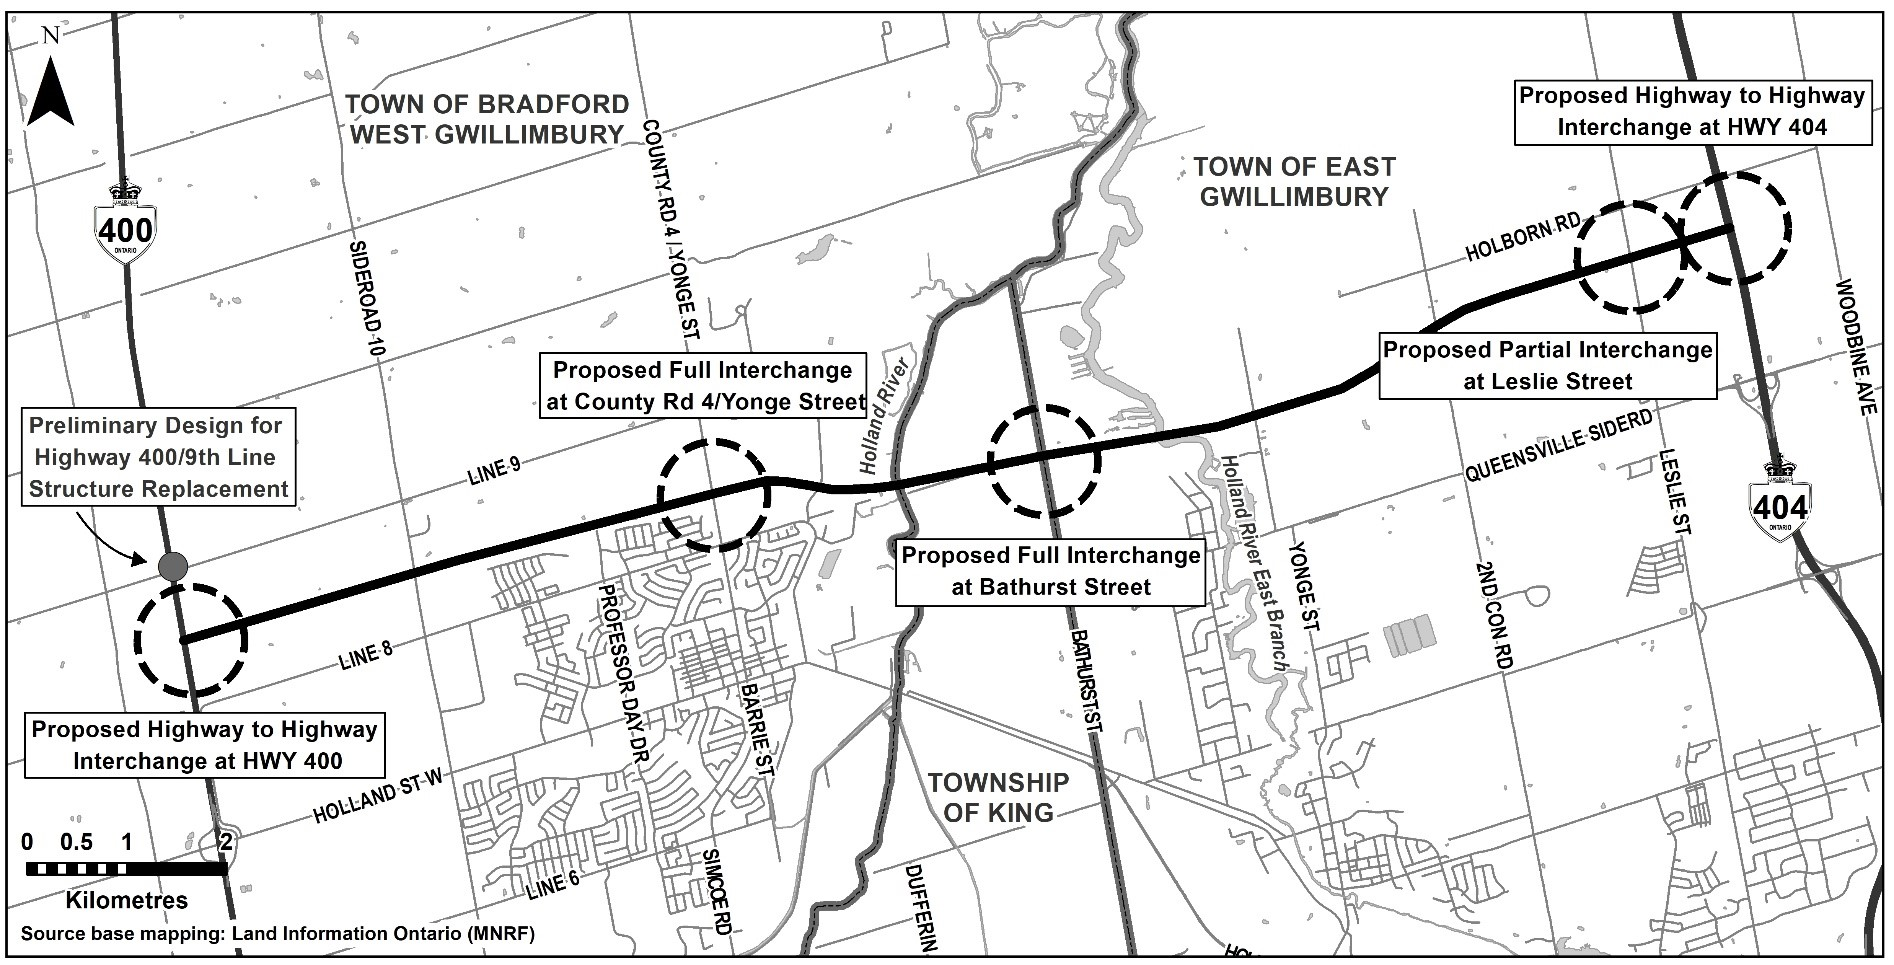 A project map that illustrates the locations for proposed interchanges and the preliminary design for the Highway 400/9th Line Structure Replacement for the Bradford Bypass.